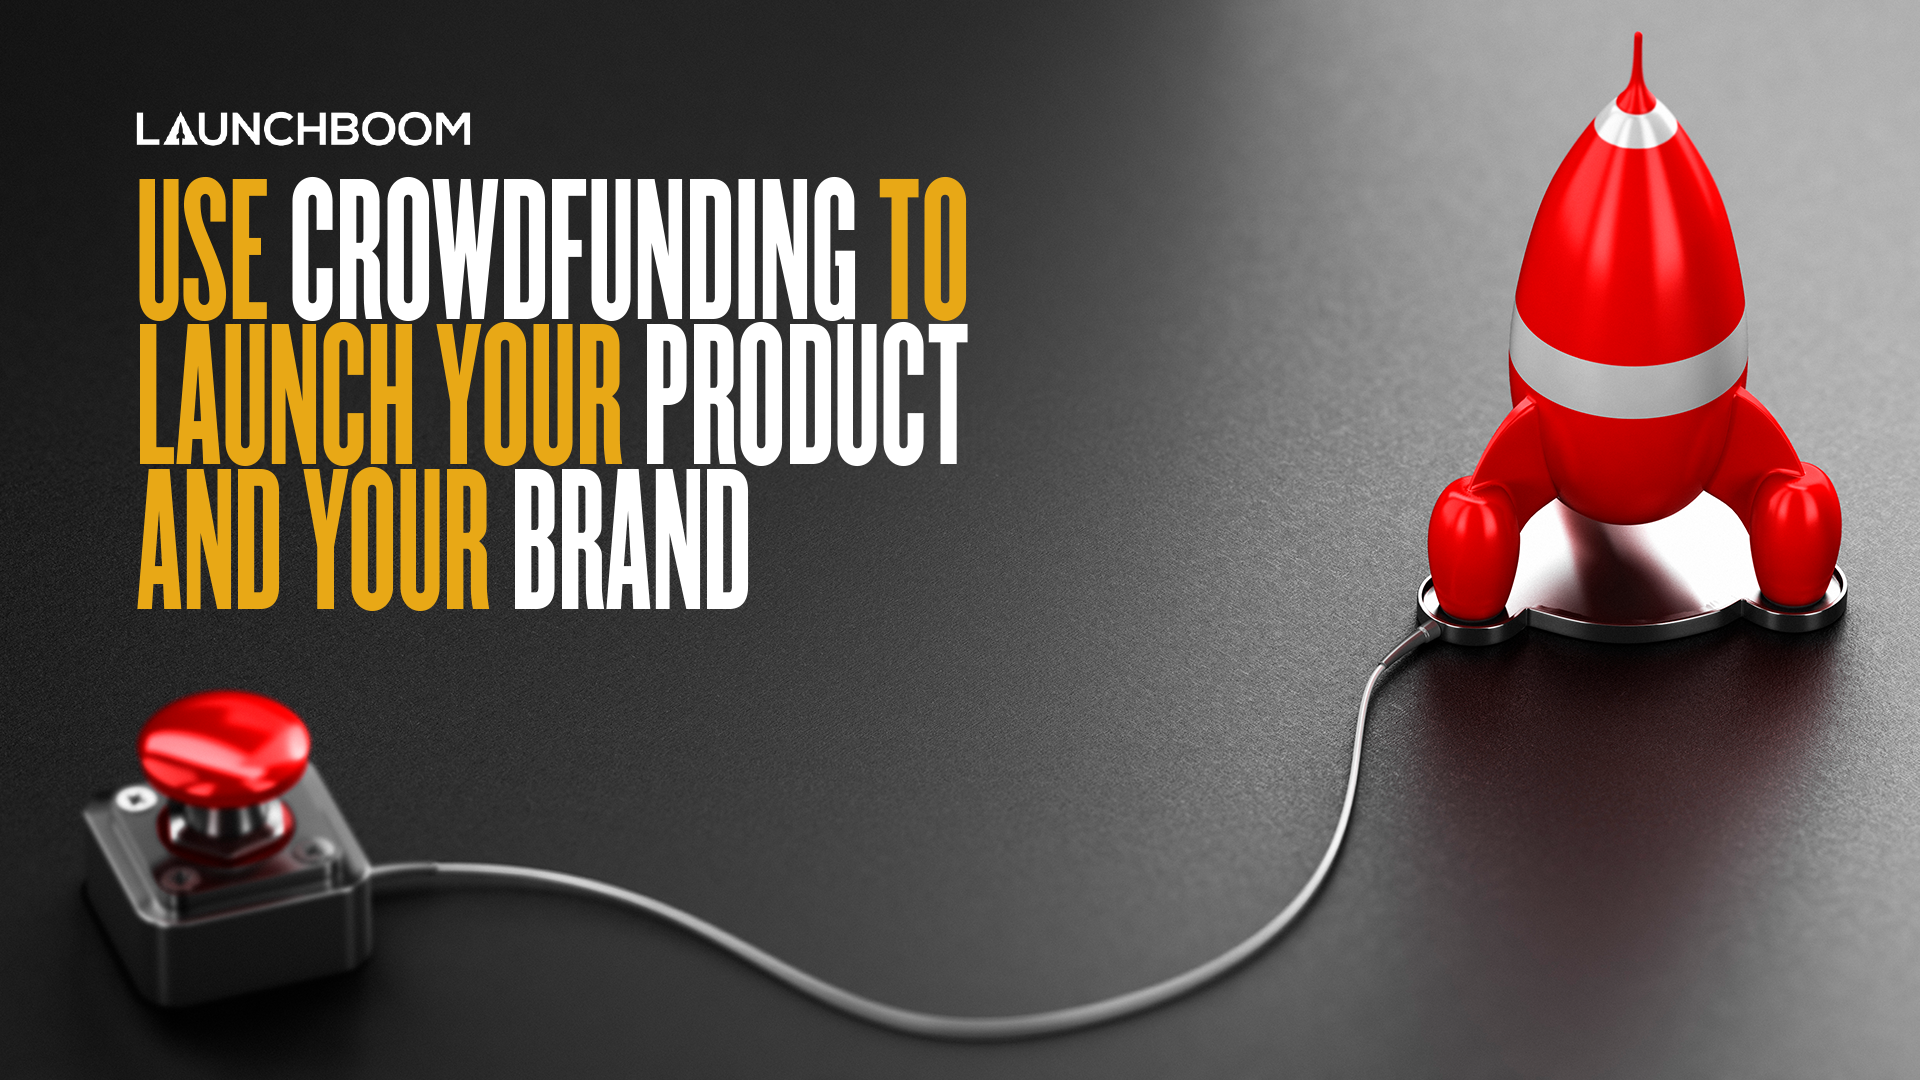 Use Crowdfunding to Launch Your Product and Your Brand